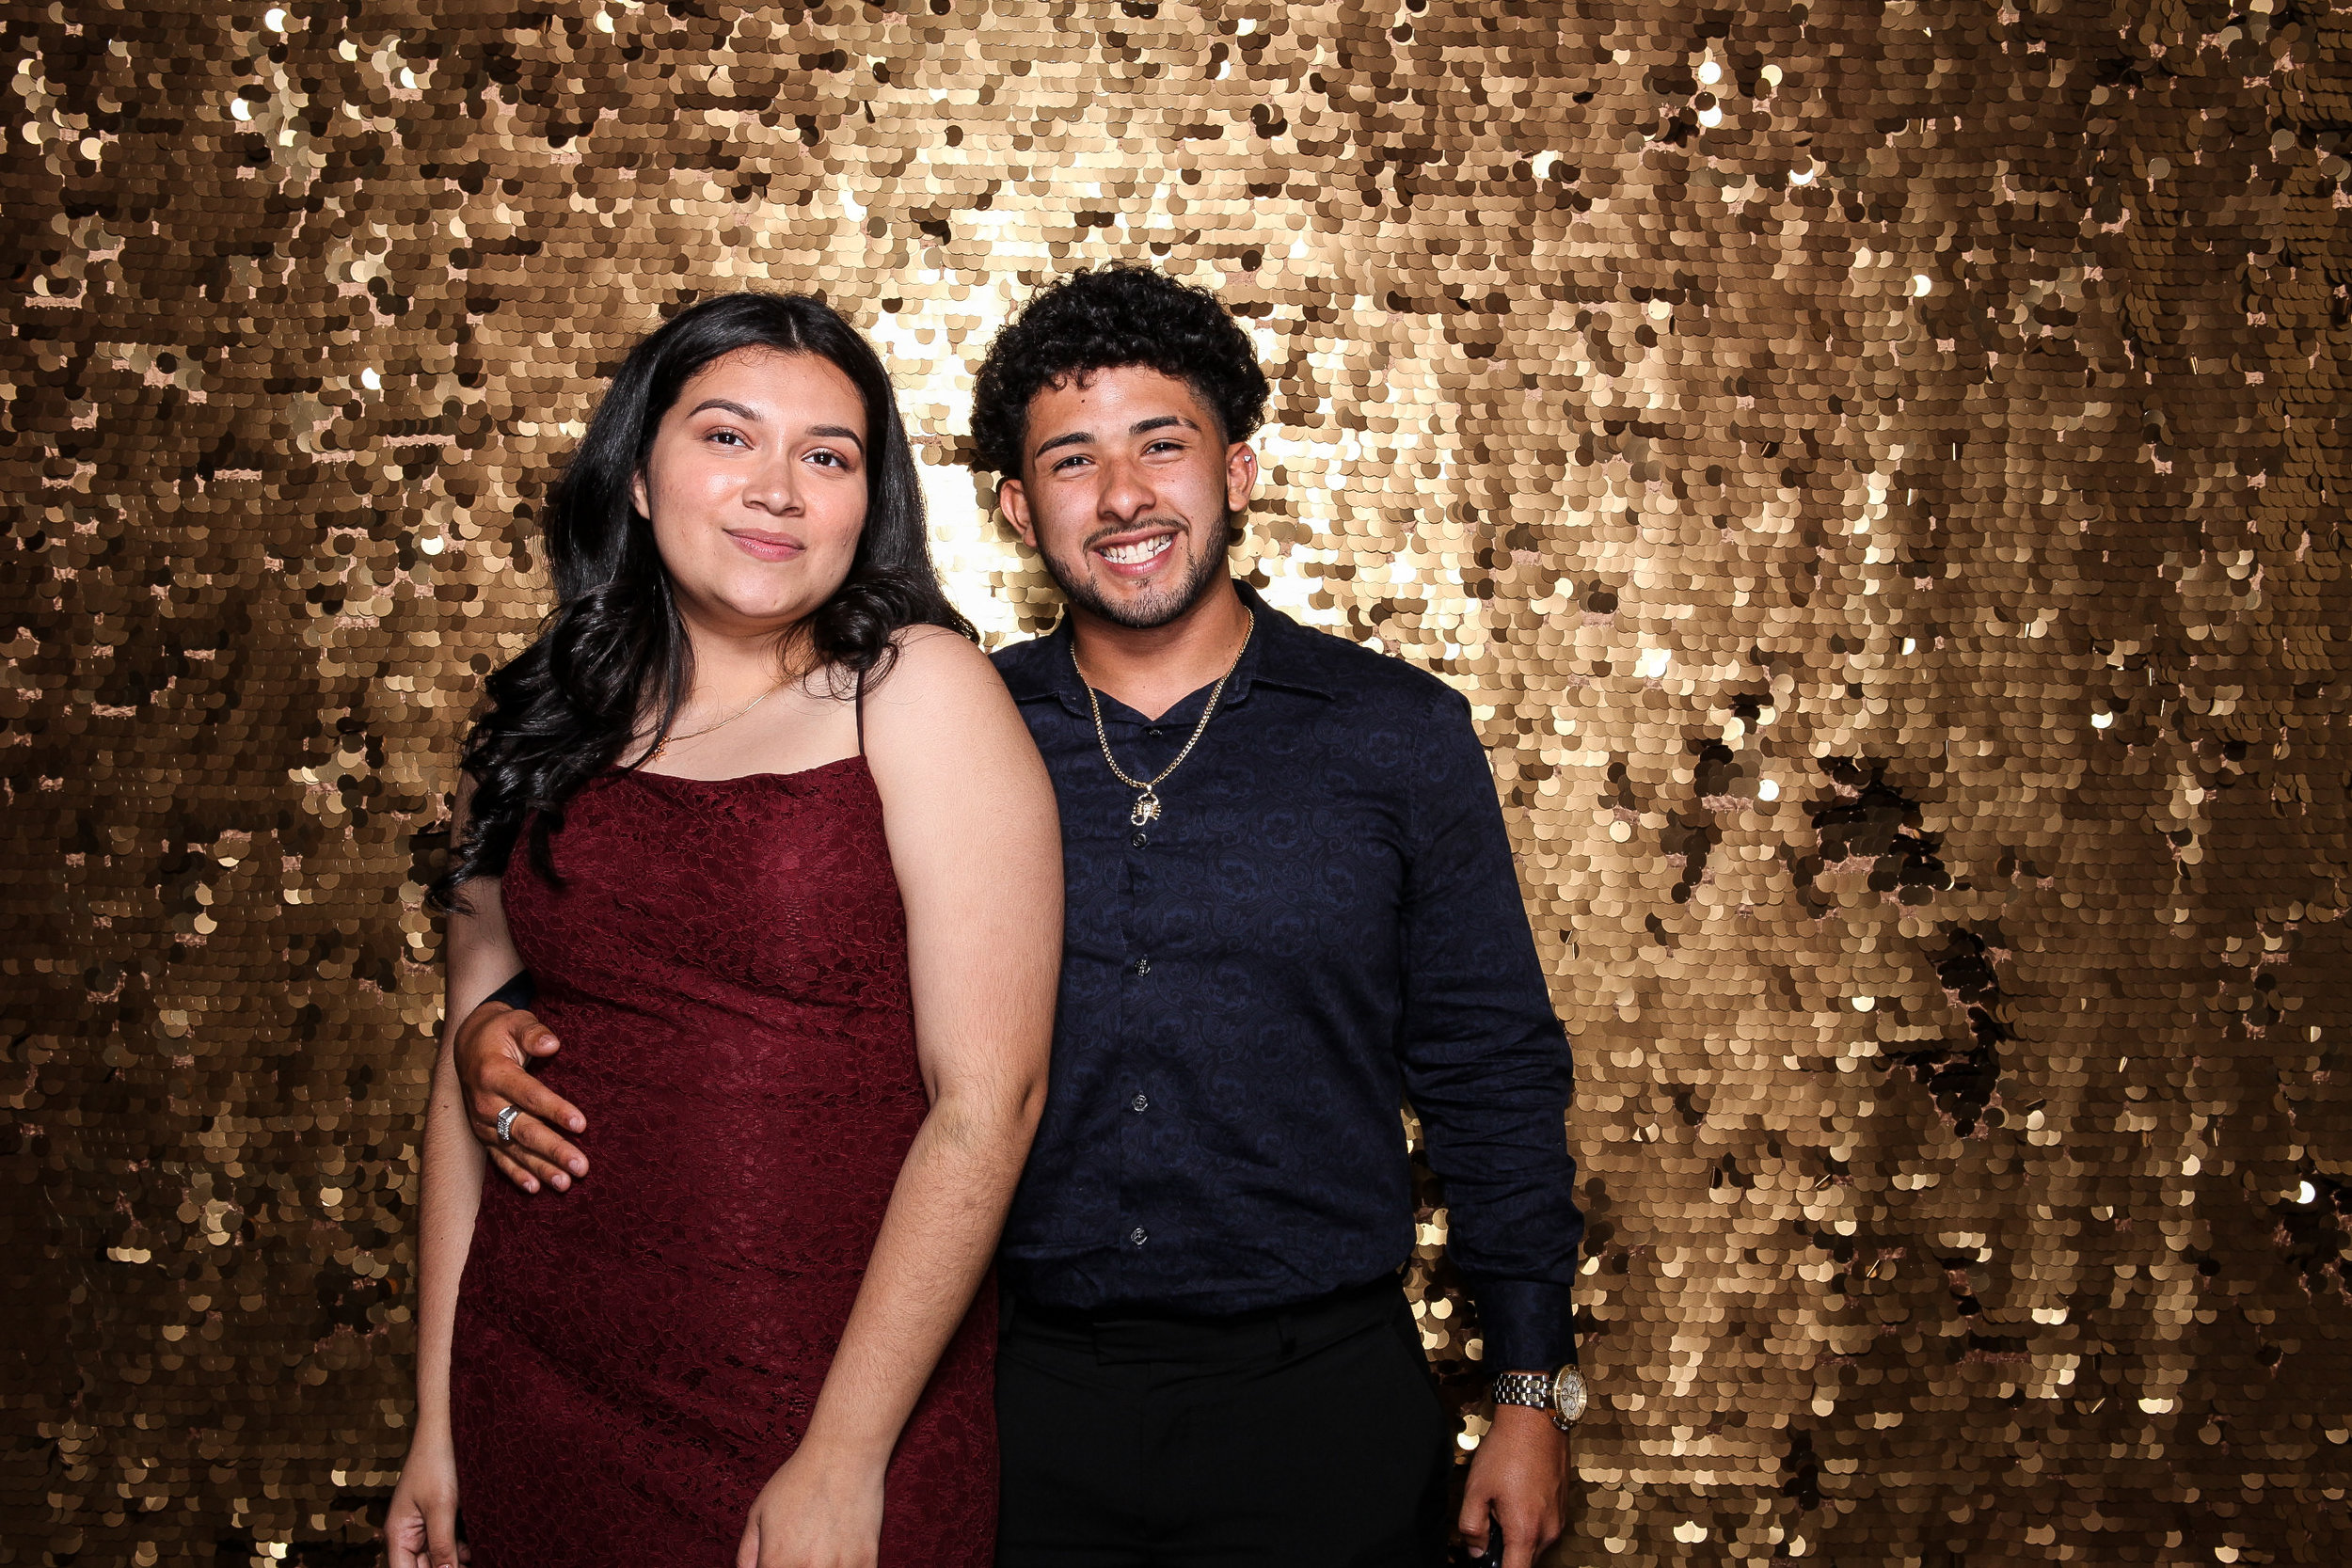 20190503_Adelphi_Senior_Formal-354.jpg